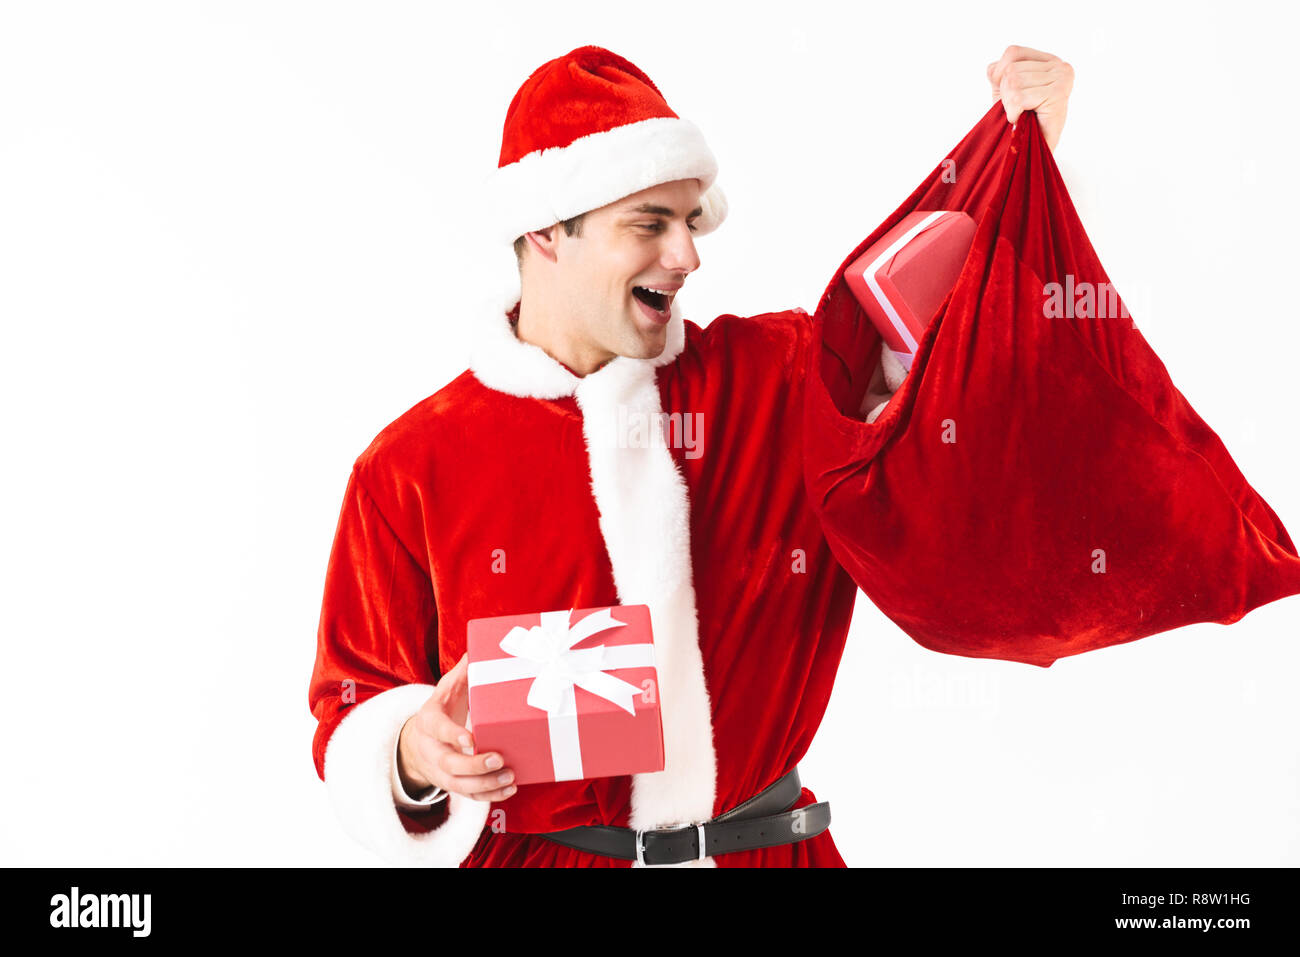 Portrait of generous man 30s in santa claus costume and red hat holding festive bag with gift boxes isolated on white background in studio - Stock Image